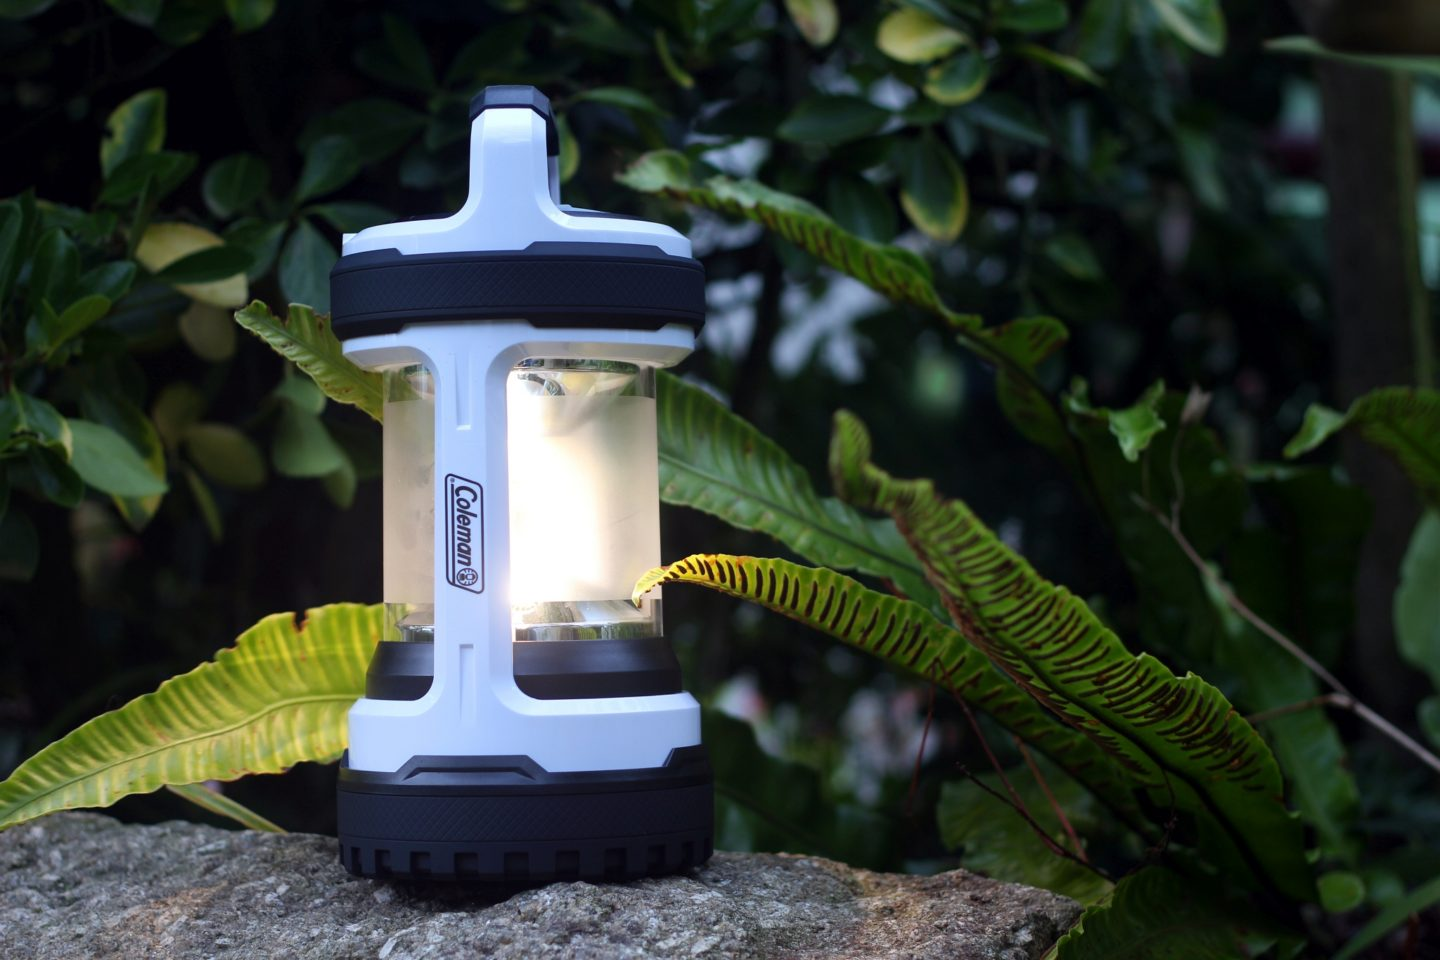 Coleman Twist+ 300 LED lantern and CHT+ 100 Headlamp Review